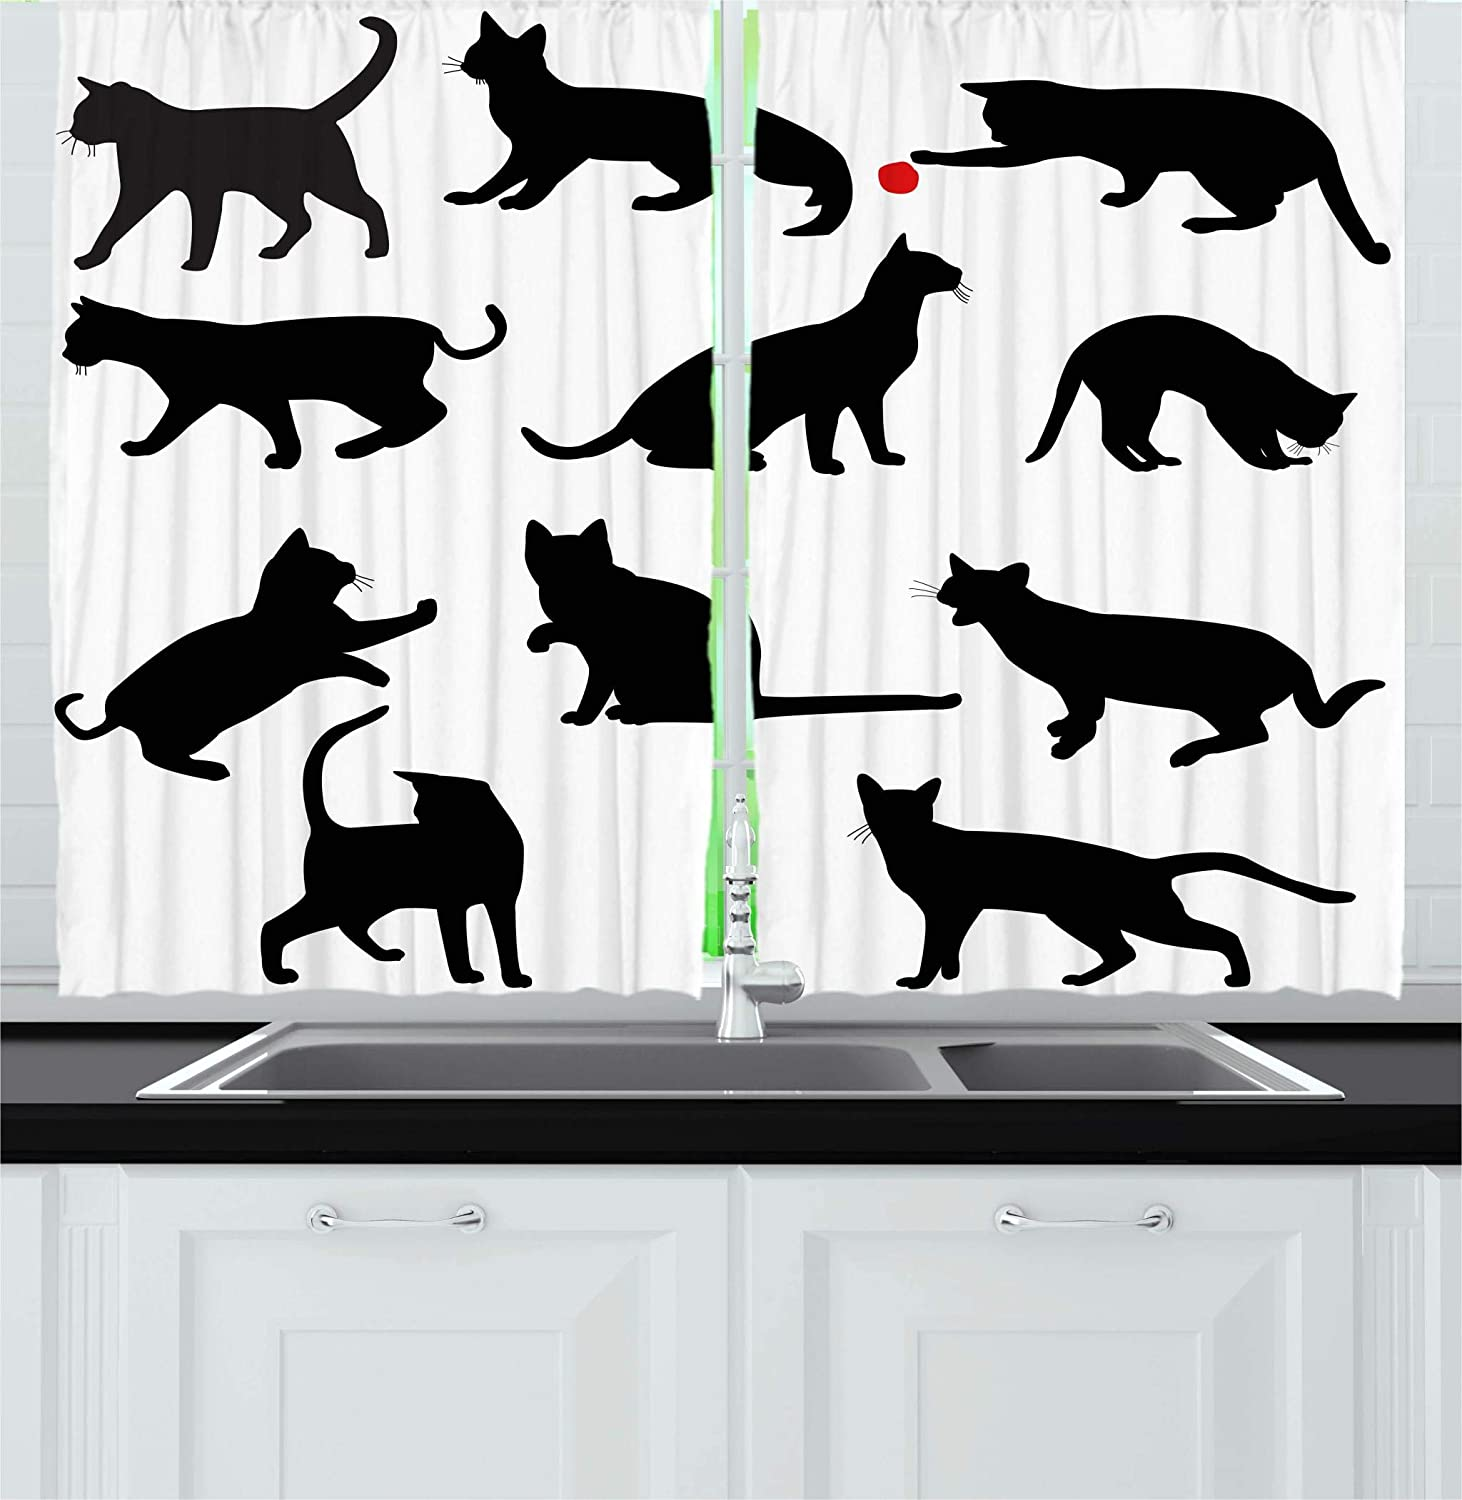 Amazon Com Ambesonne Cat Kitchen Curtains Silhouette Of Kittens In Various Postures Playing Red Ball Animal Pet Paw Print Window Drapes 2 Panel Set For Kitchen Cafe Decor 55 X 39 Vermilion Black